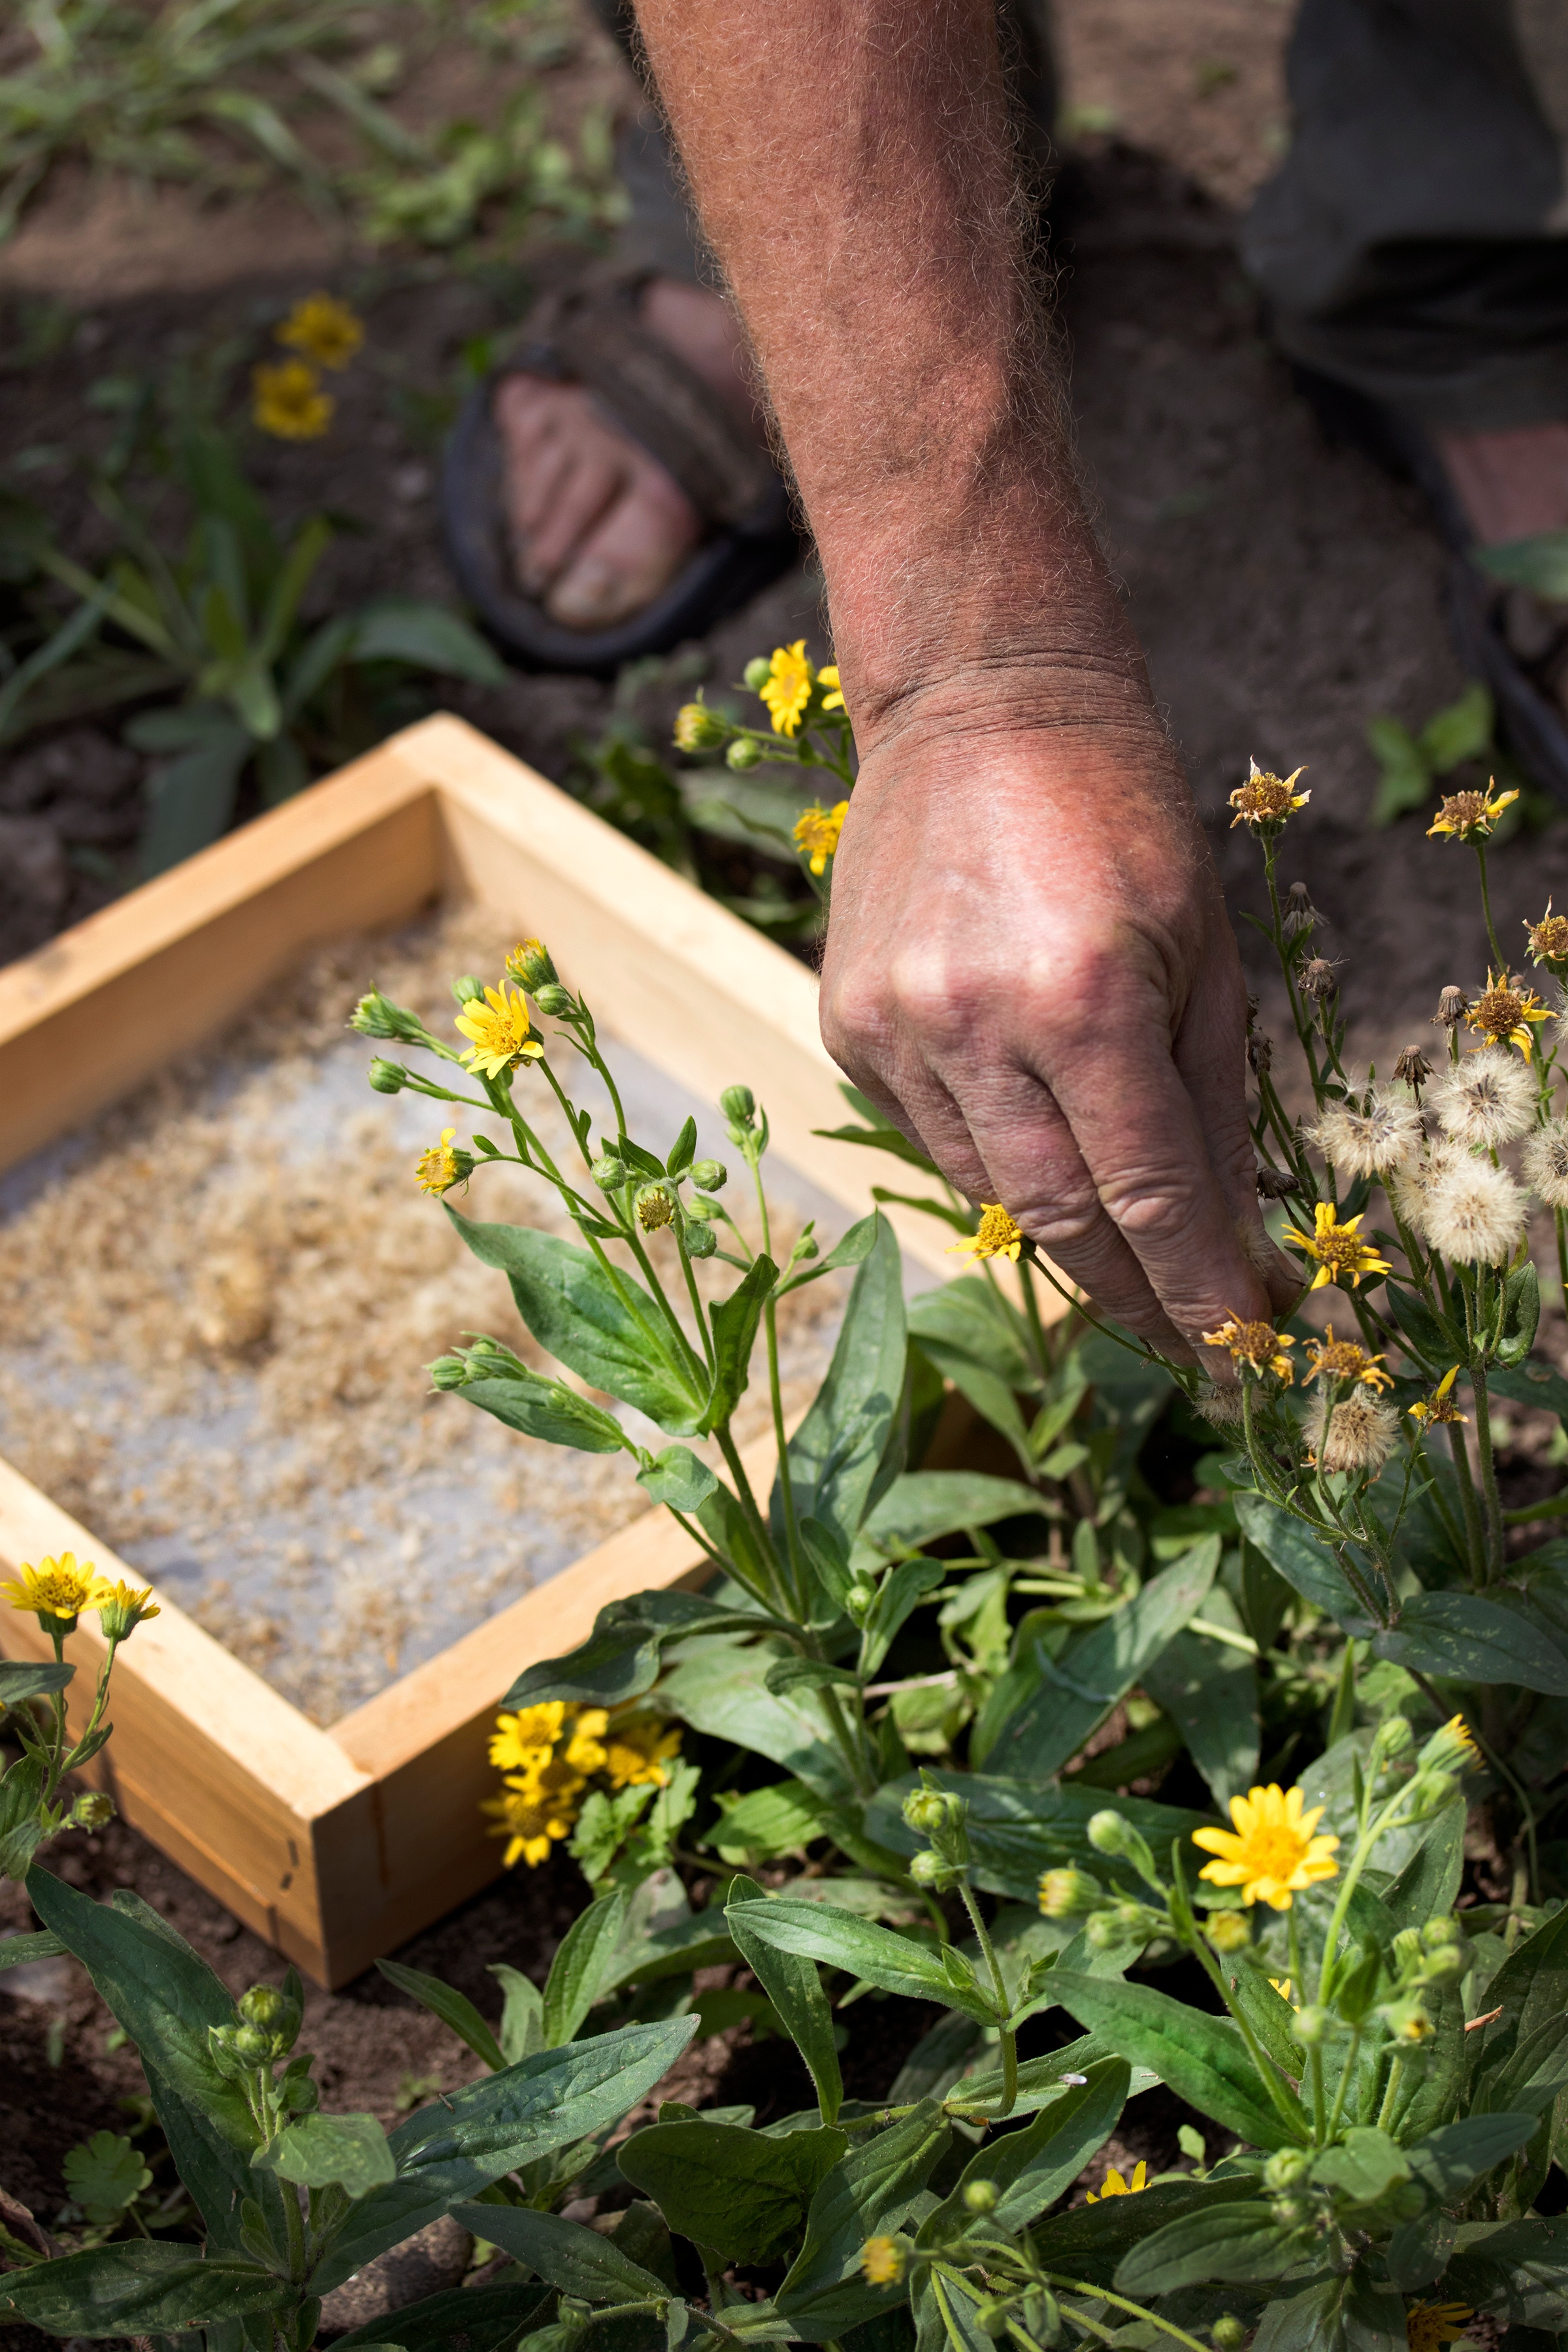 Richo Cech handling Arnica Seeds and Arnica plants and flowers